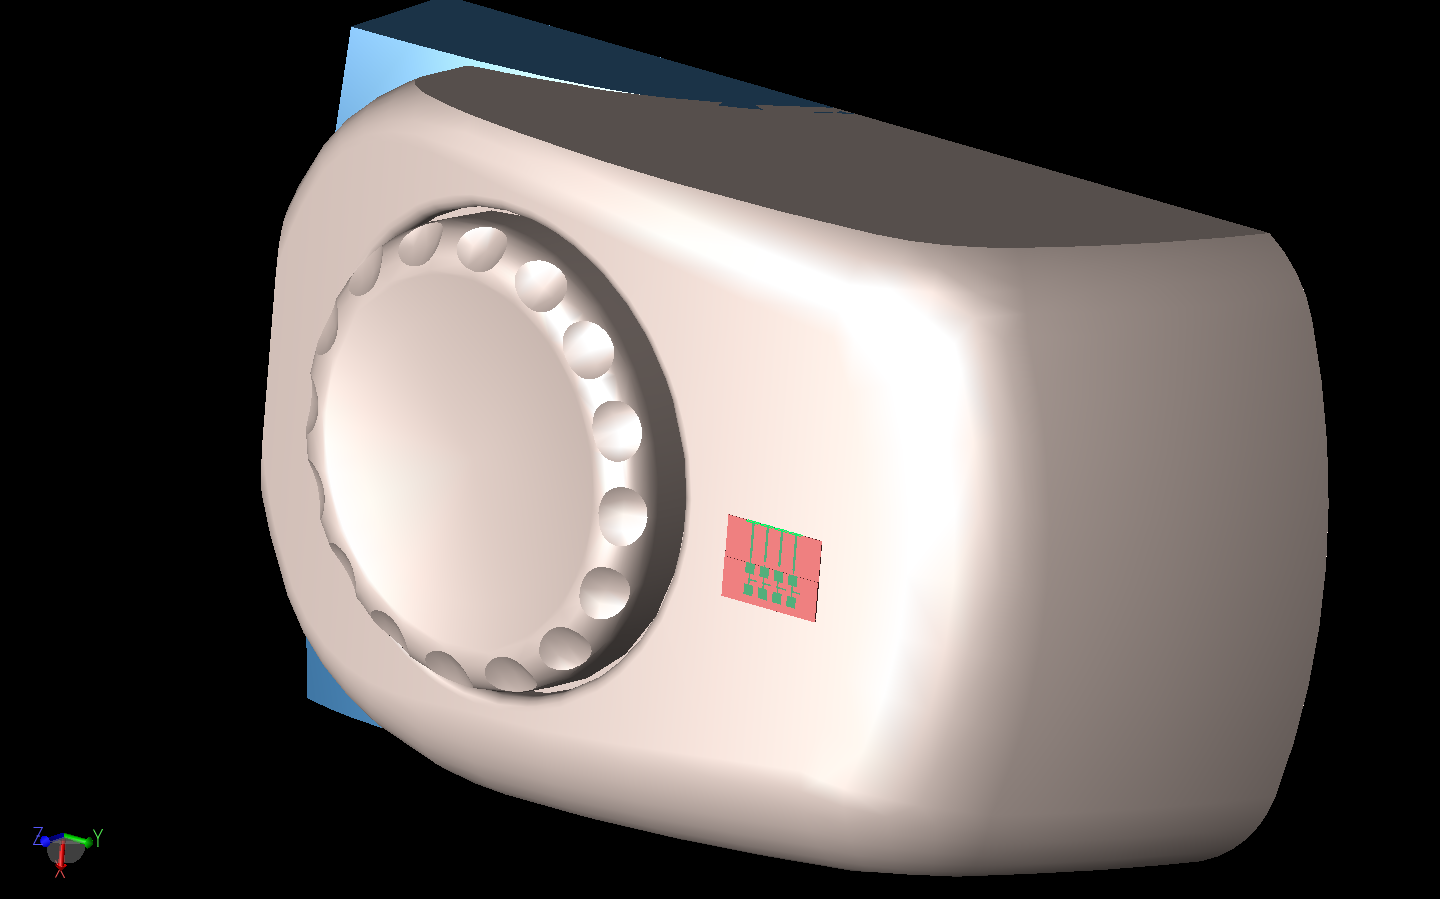 Figure 9: Due to the large size of the problem space, a section of the headset/head model is used for the actual simulations.